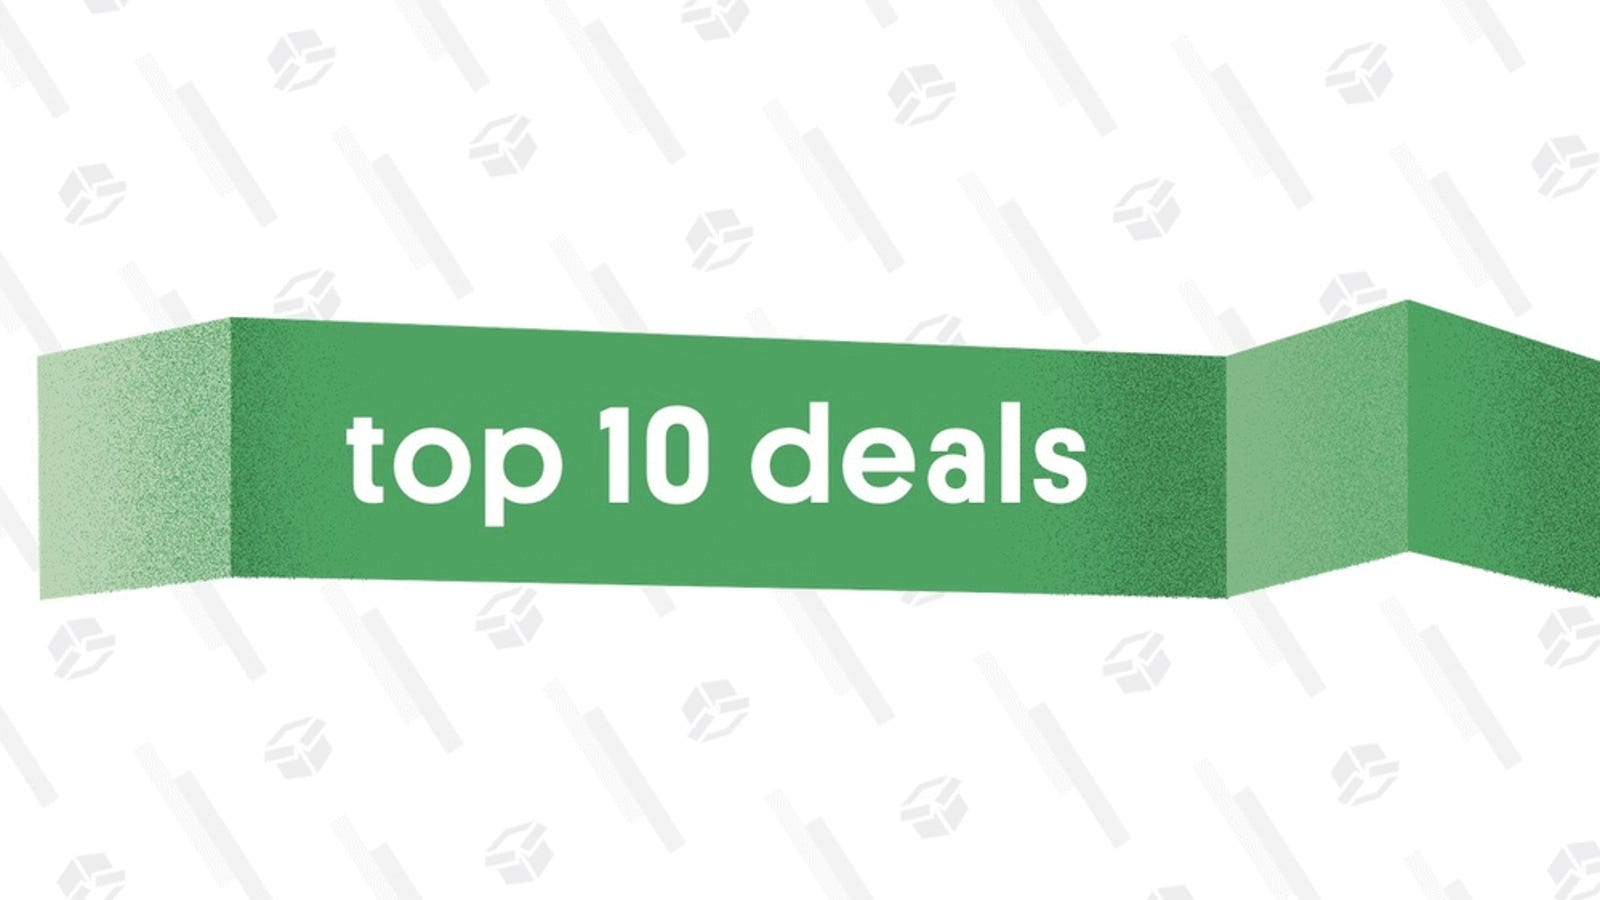 photo of The 10 Best Deals of August 14, 2019 image